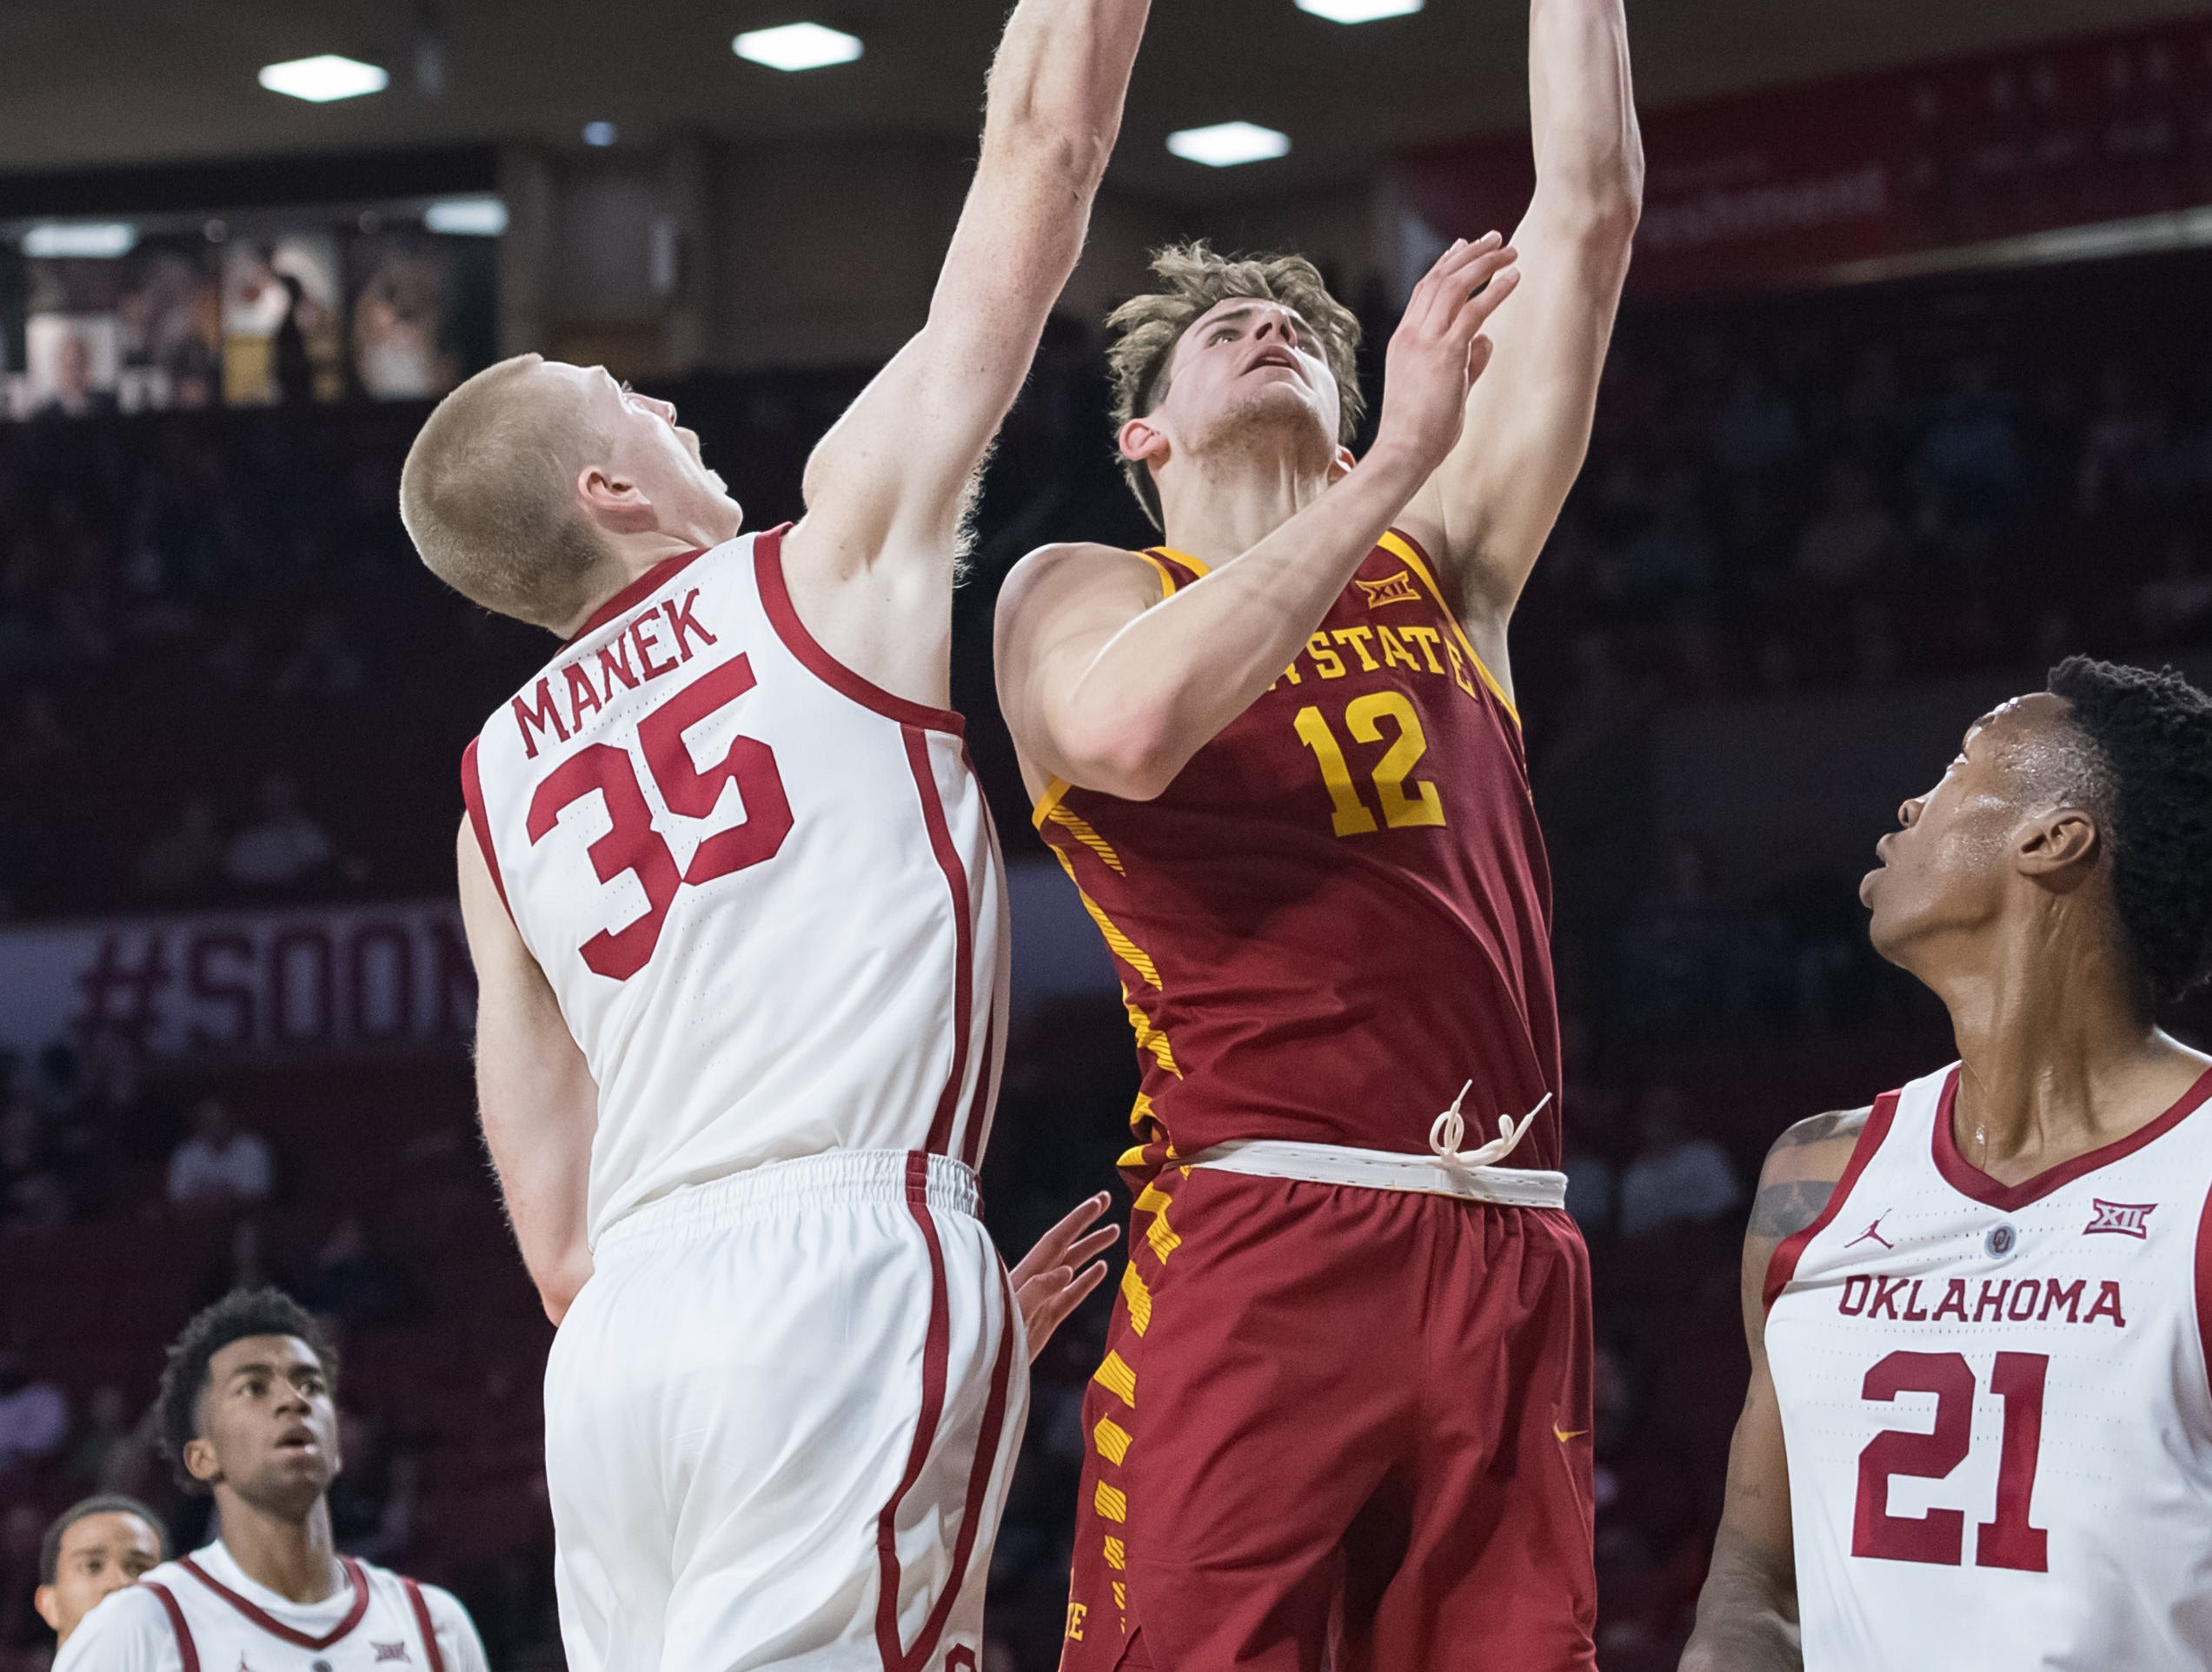 Iowa State Cyclones forward Michael Jacobson (12) shoots the ball past Oklahoma Sooners forward Brady Manek (35) during the first half at Lloyd Noble Center.